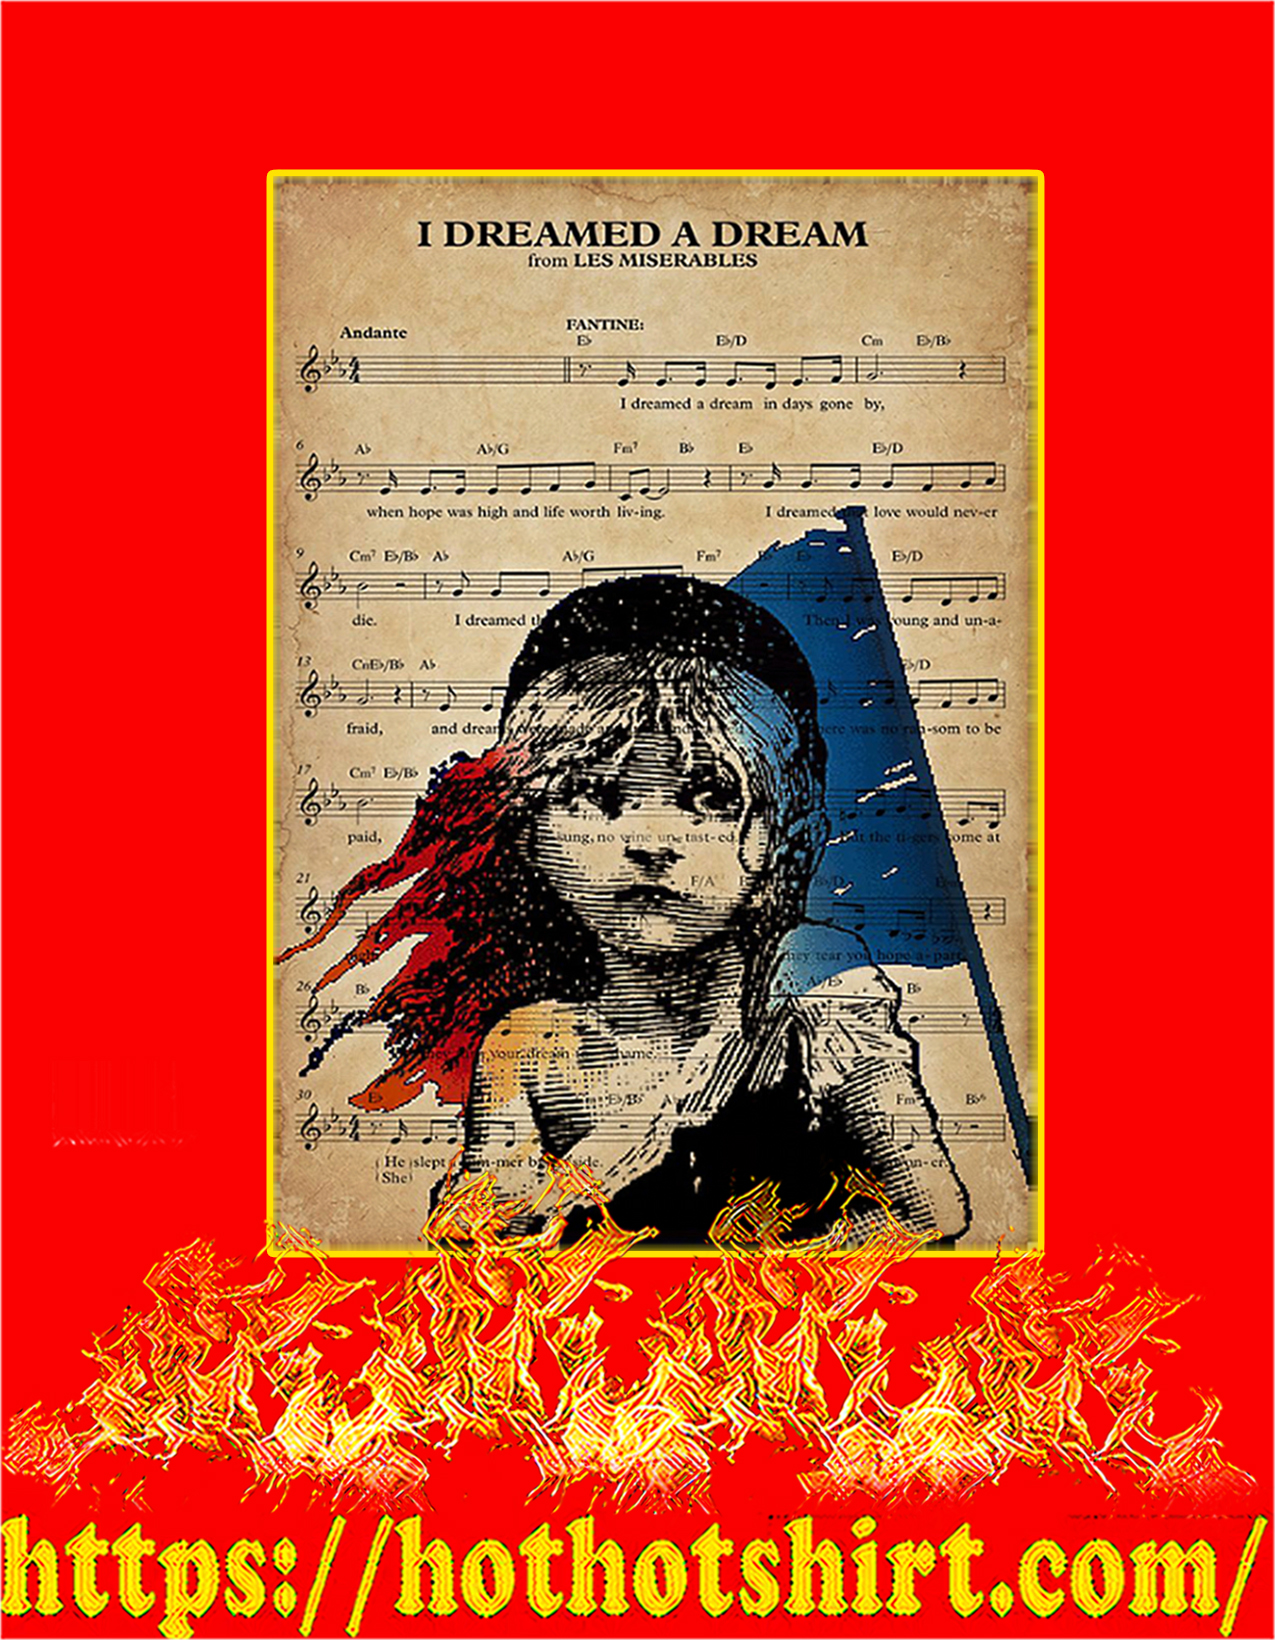 I dreamed a dream from les miserables poster - A2